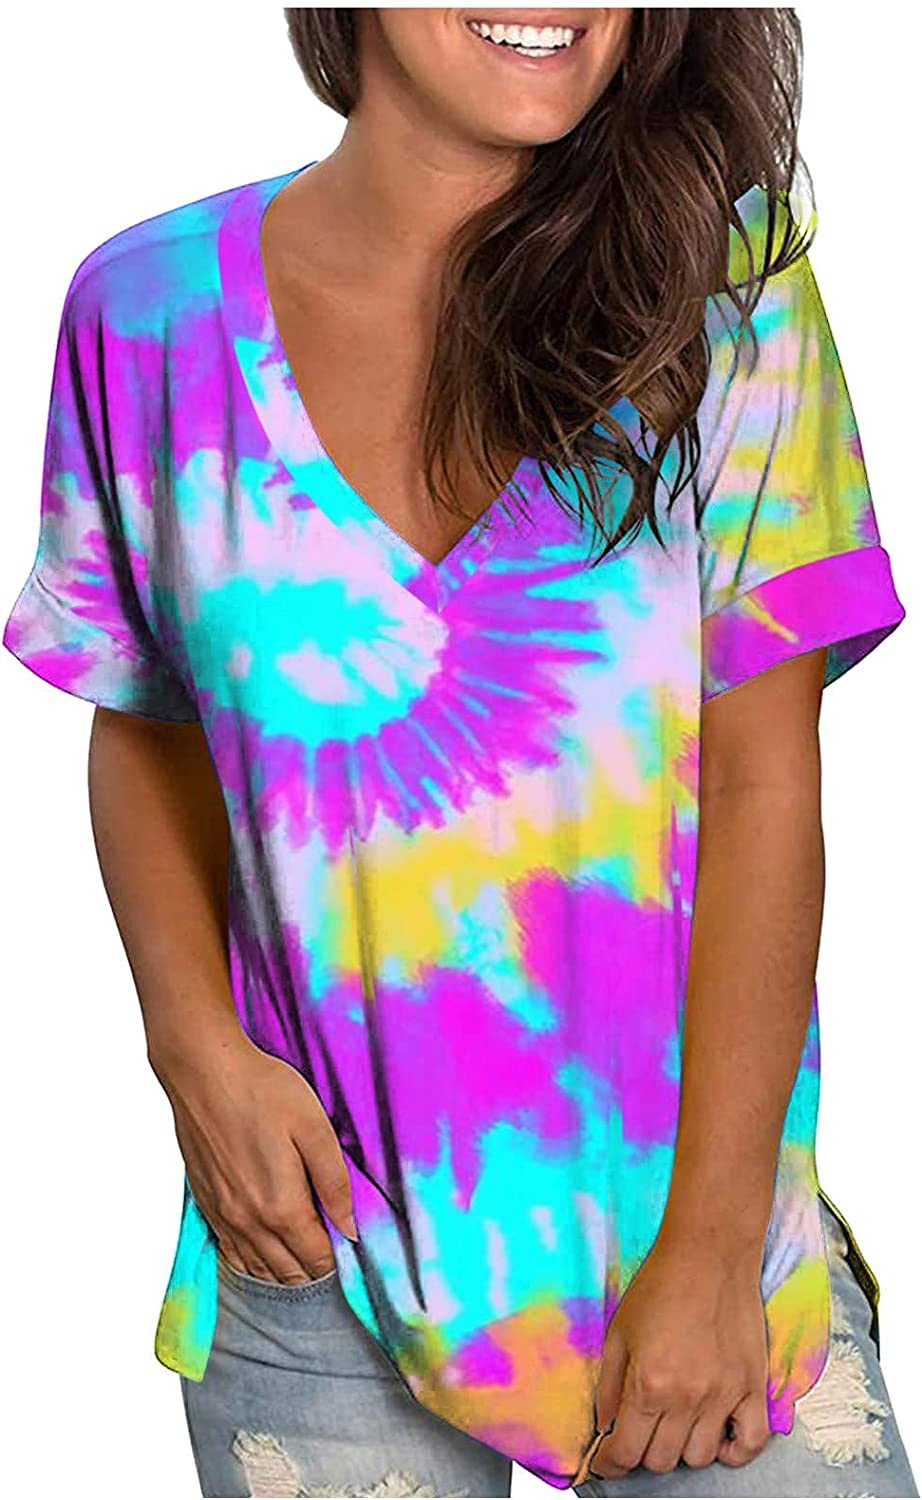 soyienma Womens Summer Tops,Tie Dye Tops Color V Neck Tees Casual Short Sleeve Blouses Loose Pullover Shirts